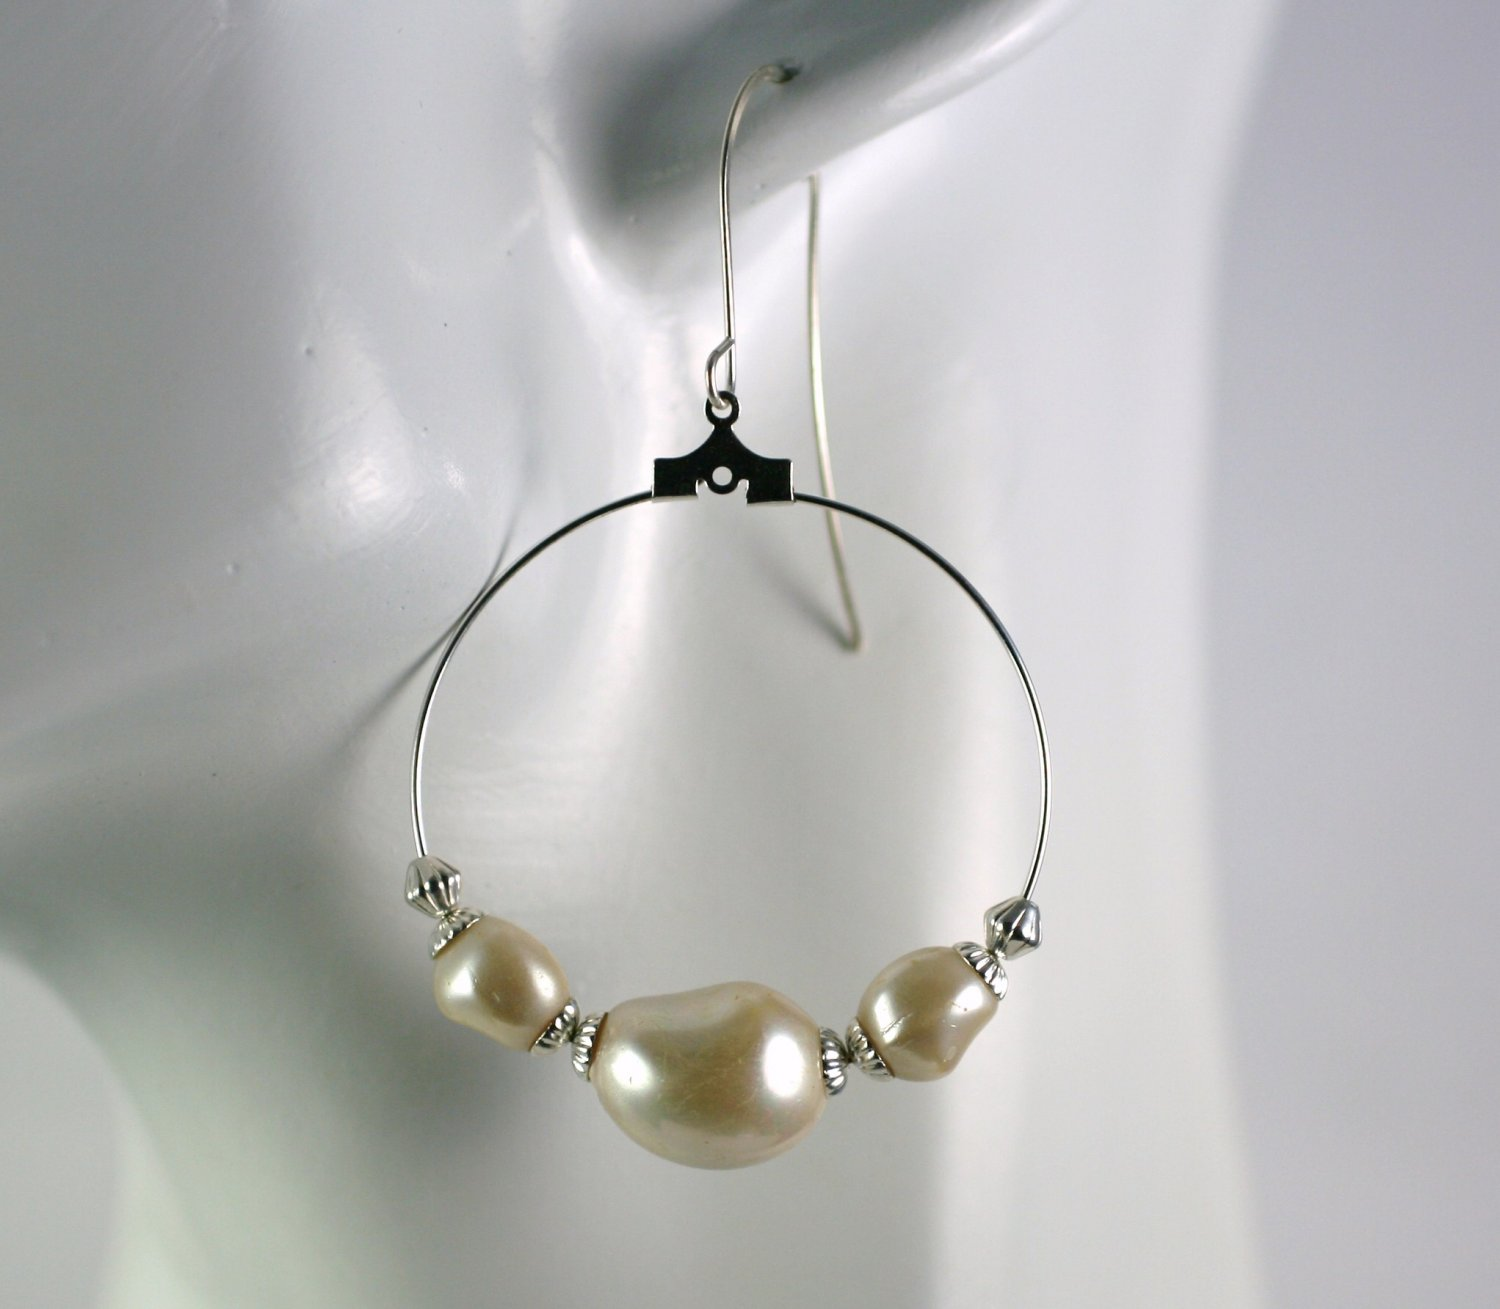 Silver Hoop Earrings with White Faux Pearl Beads 1.5 in.  Handcrafted Jewelry